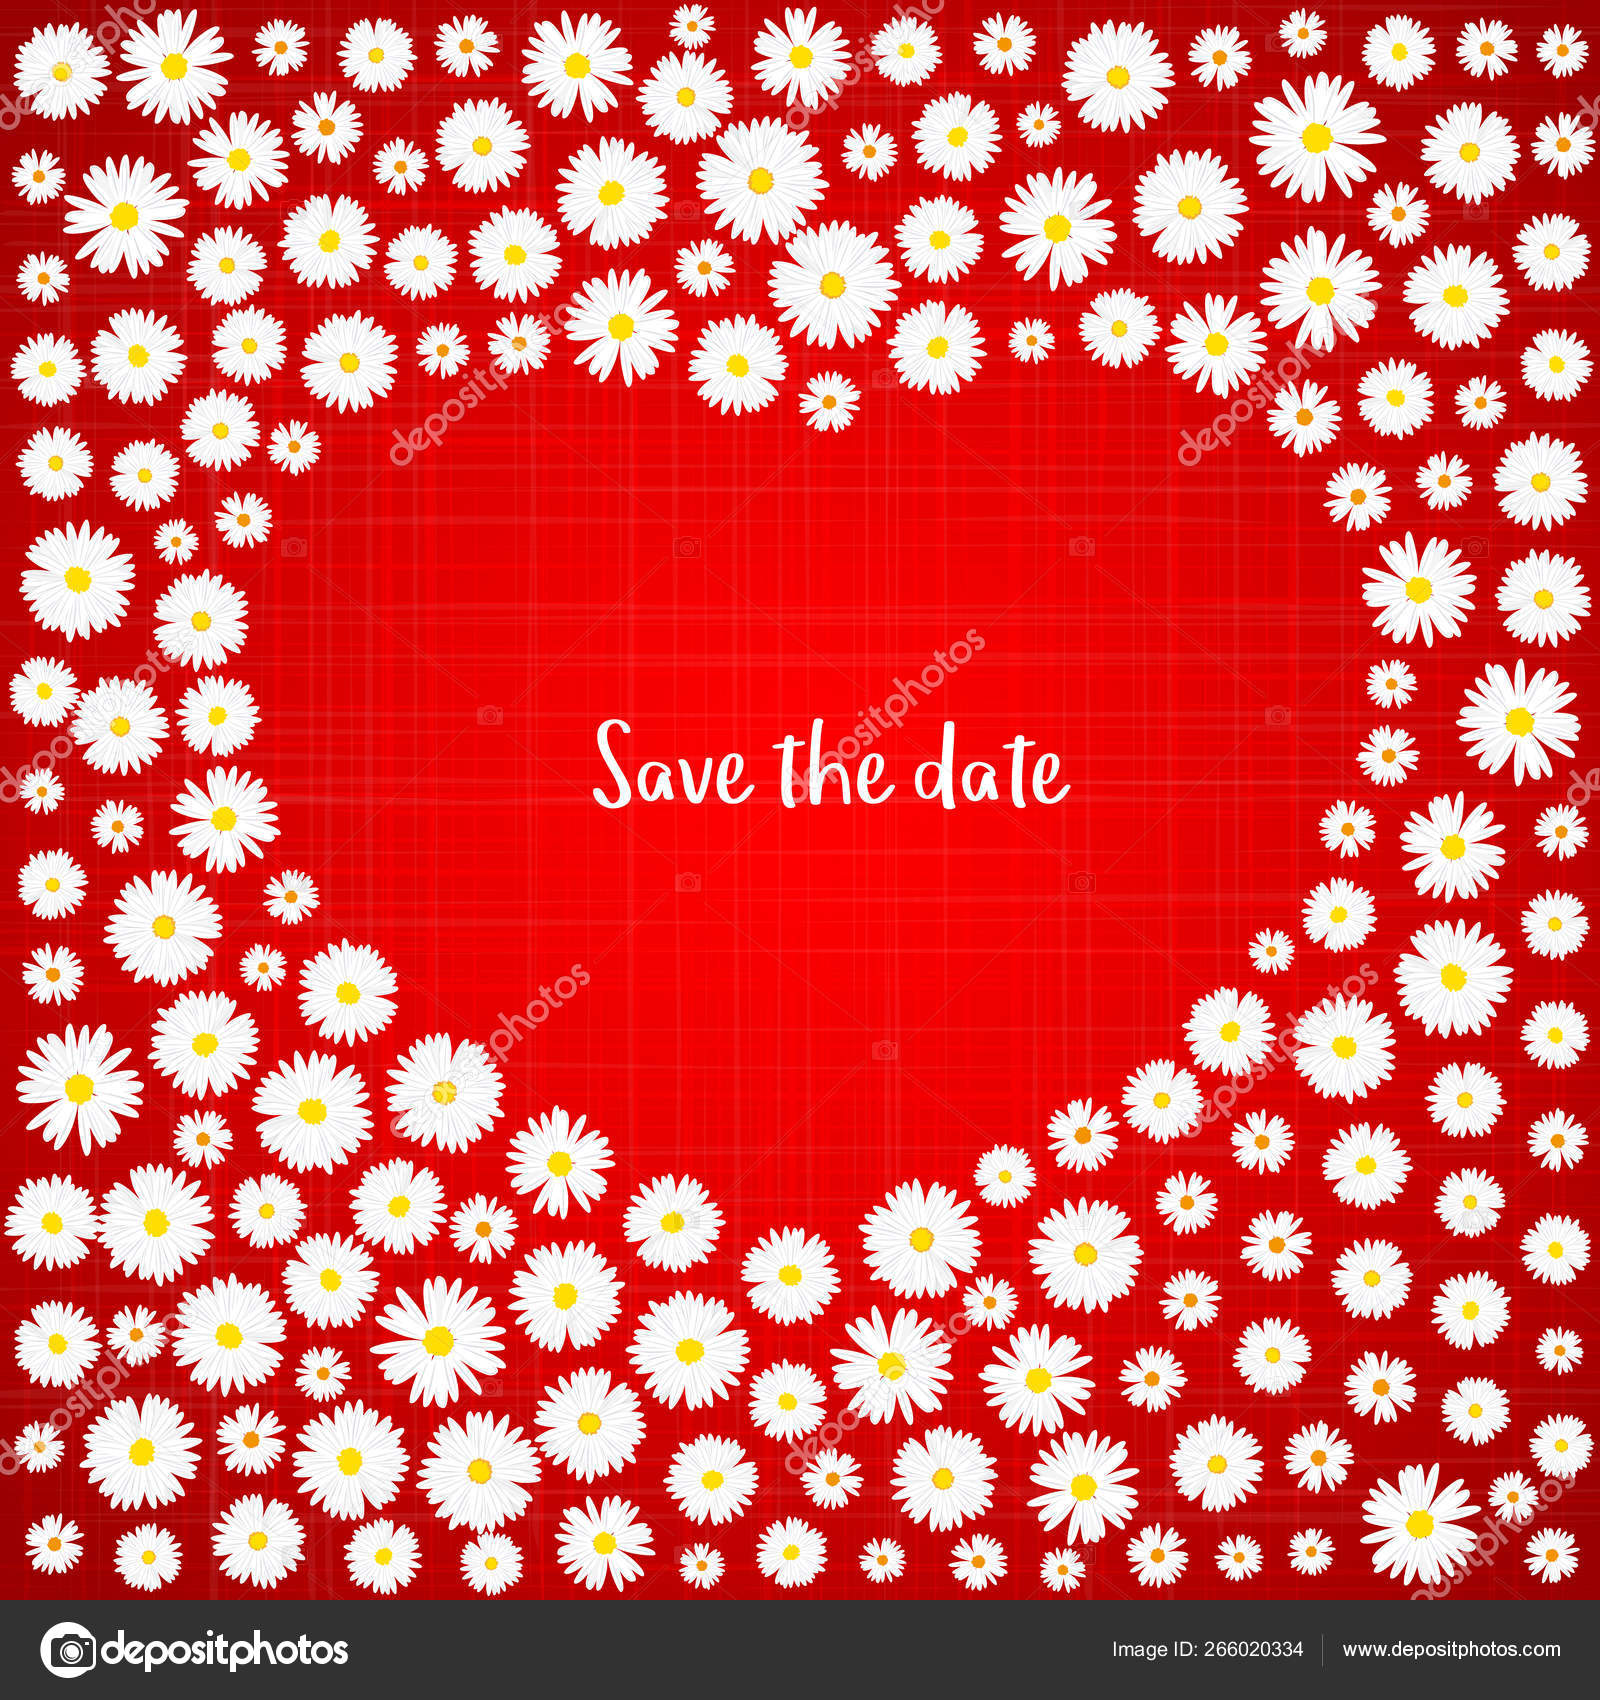 save the date romantic card white daisies on red background wedding invitation card template love concept valentines day festive poster for 14 february vector illustration vector image by c amnell vector stock 266020334